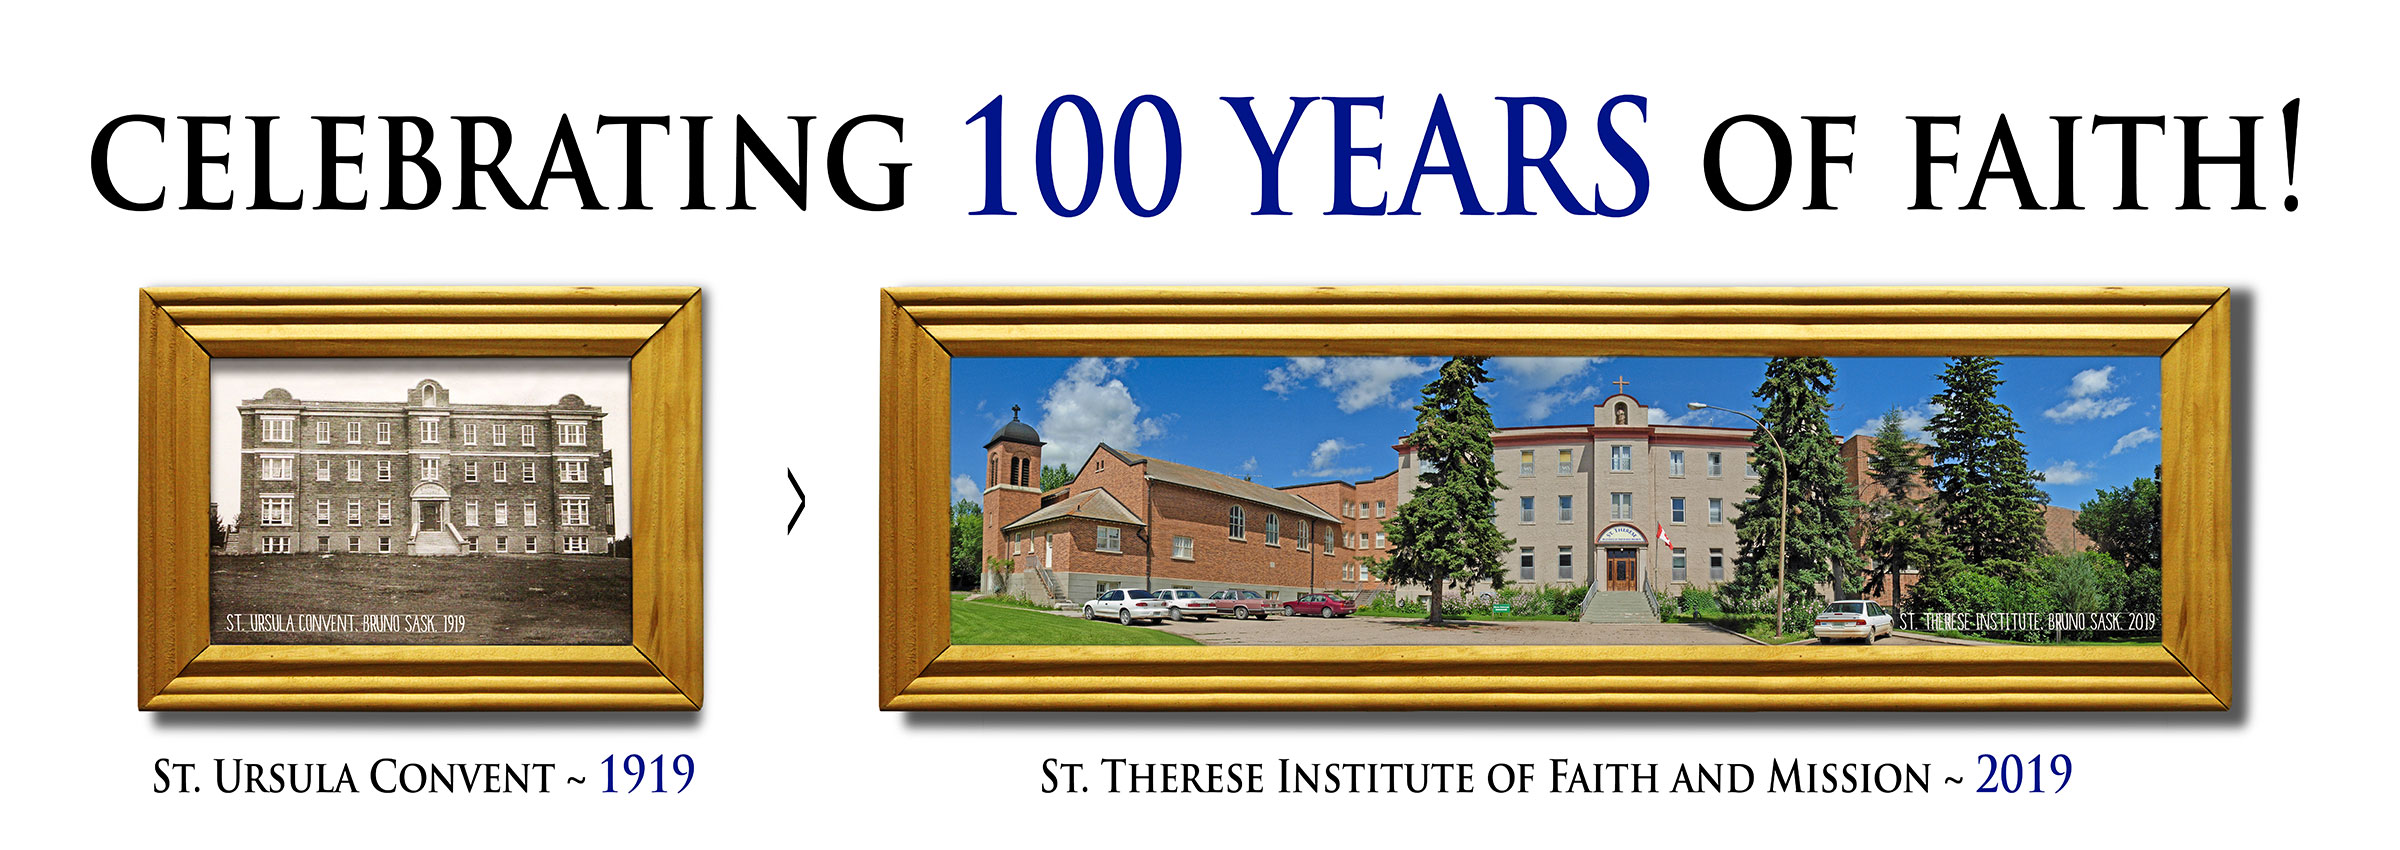 (photo of St. Ursula Convent in 1919, and of St Therese Institute today) Celebrating 100 years of faith.